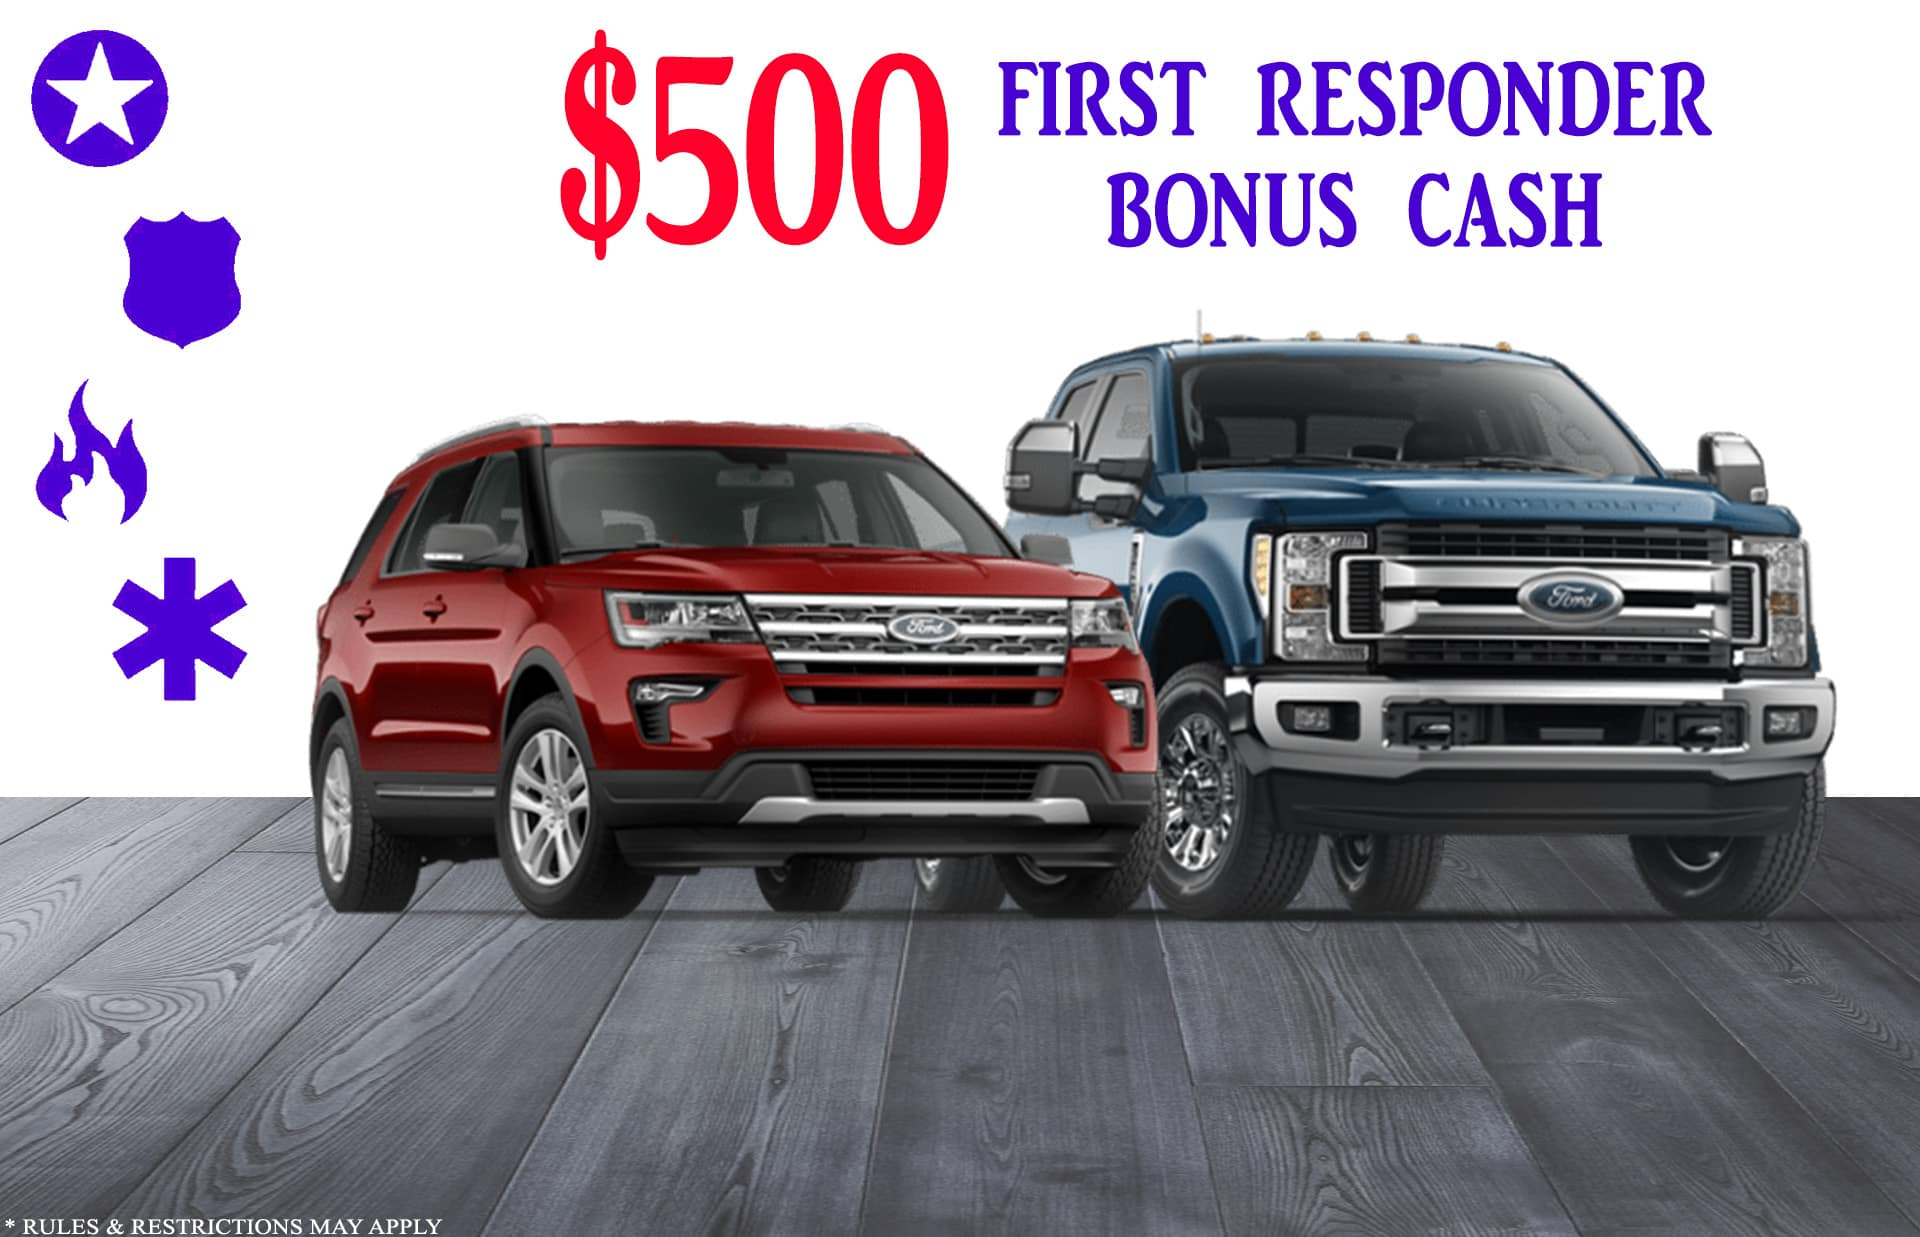 Ford First Responder >> First Responder Bonus Cash Gullo Ford Of Conroe